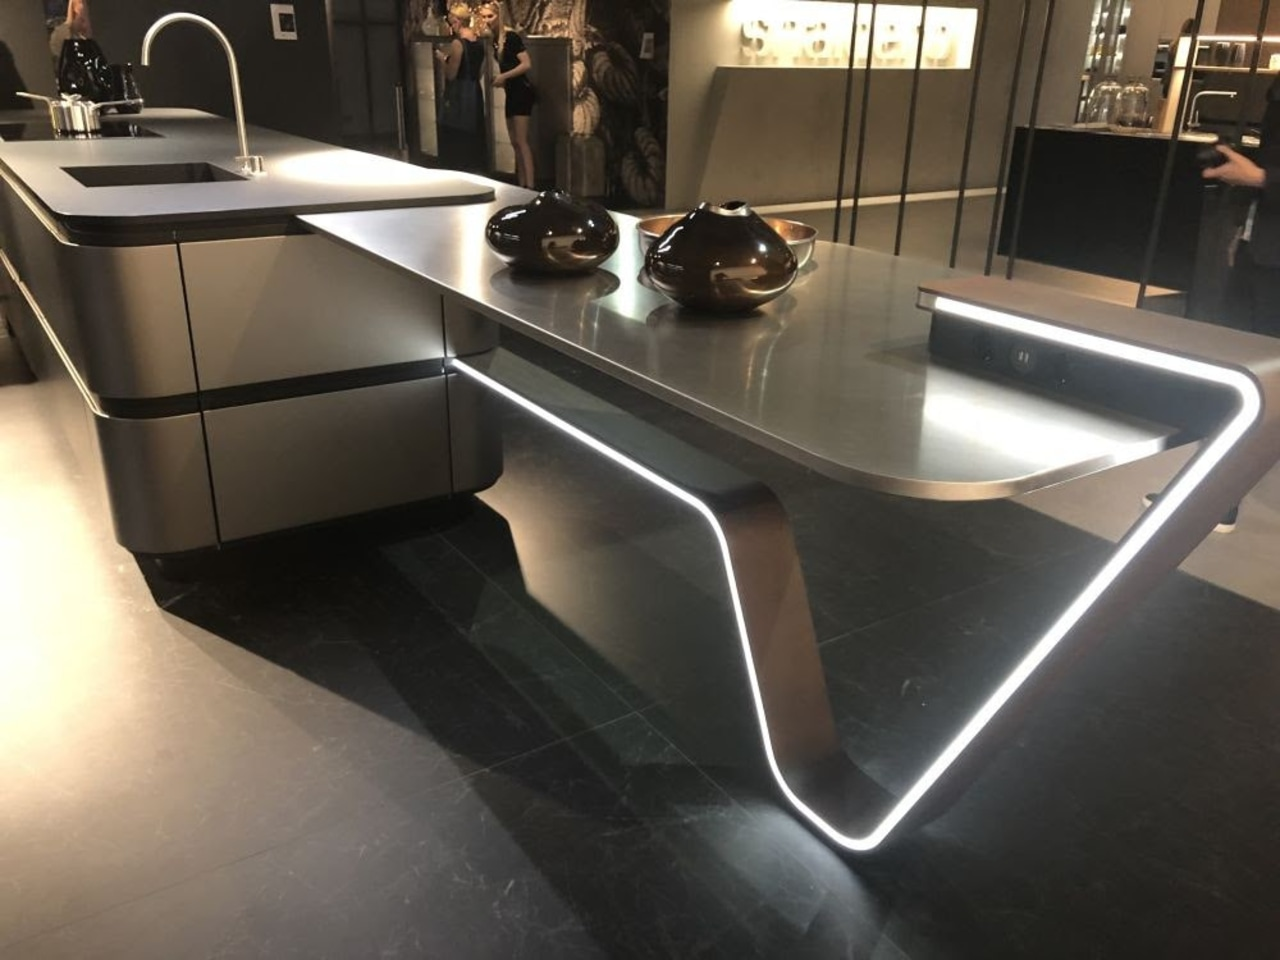 Trend 5 Product Versatility - countertop | floor countertop, floor, flooring, furniture, kitchen, sink, table, tap, black